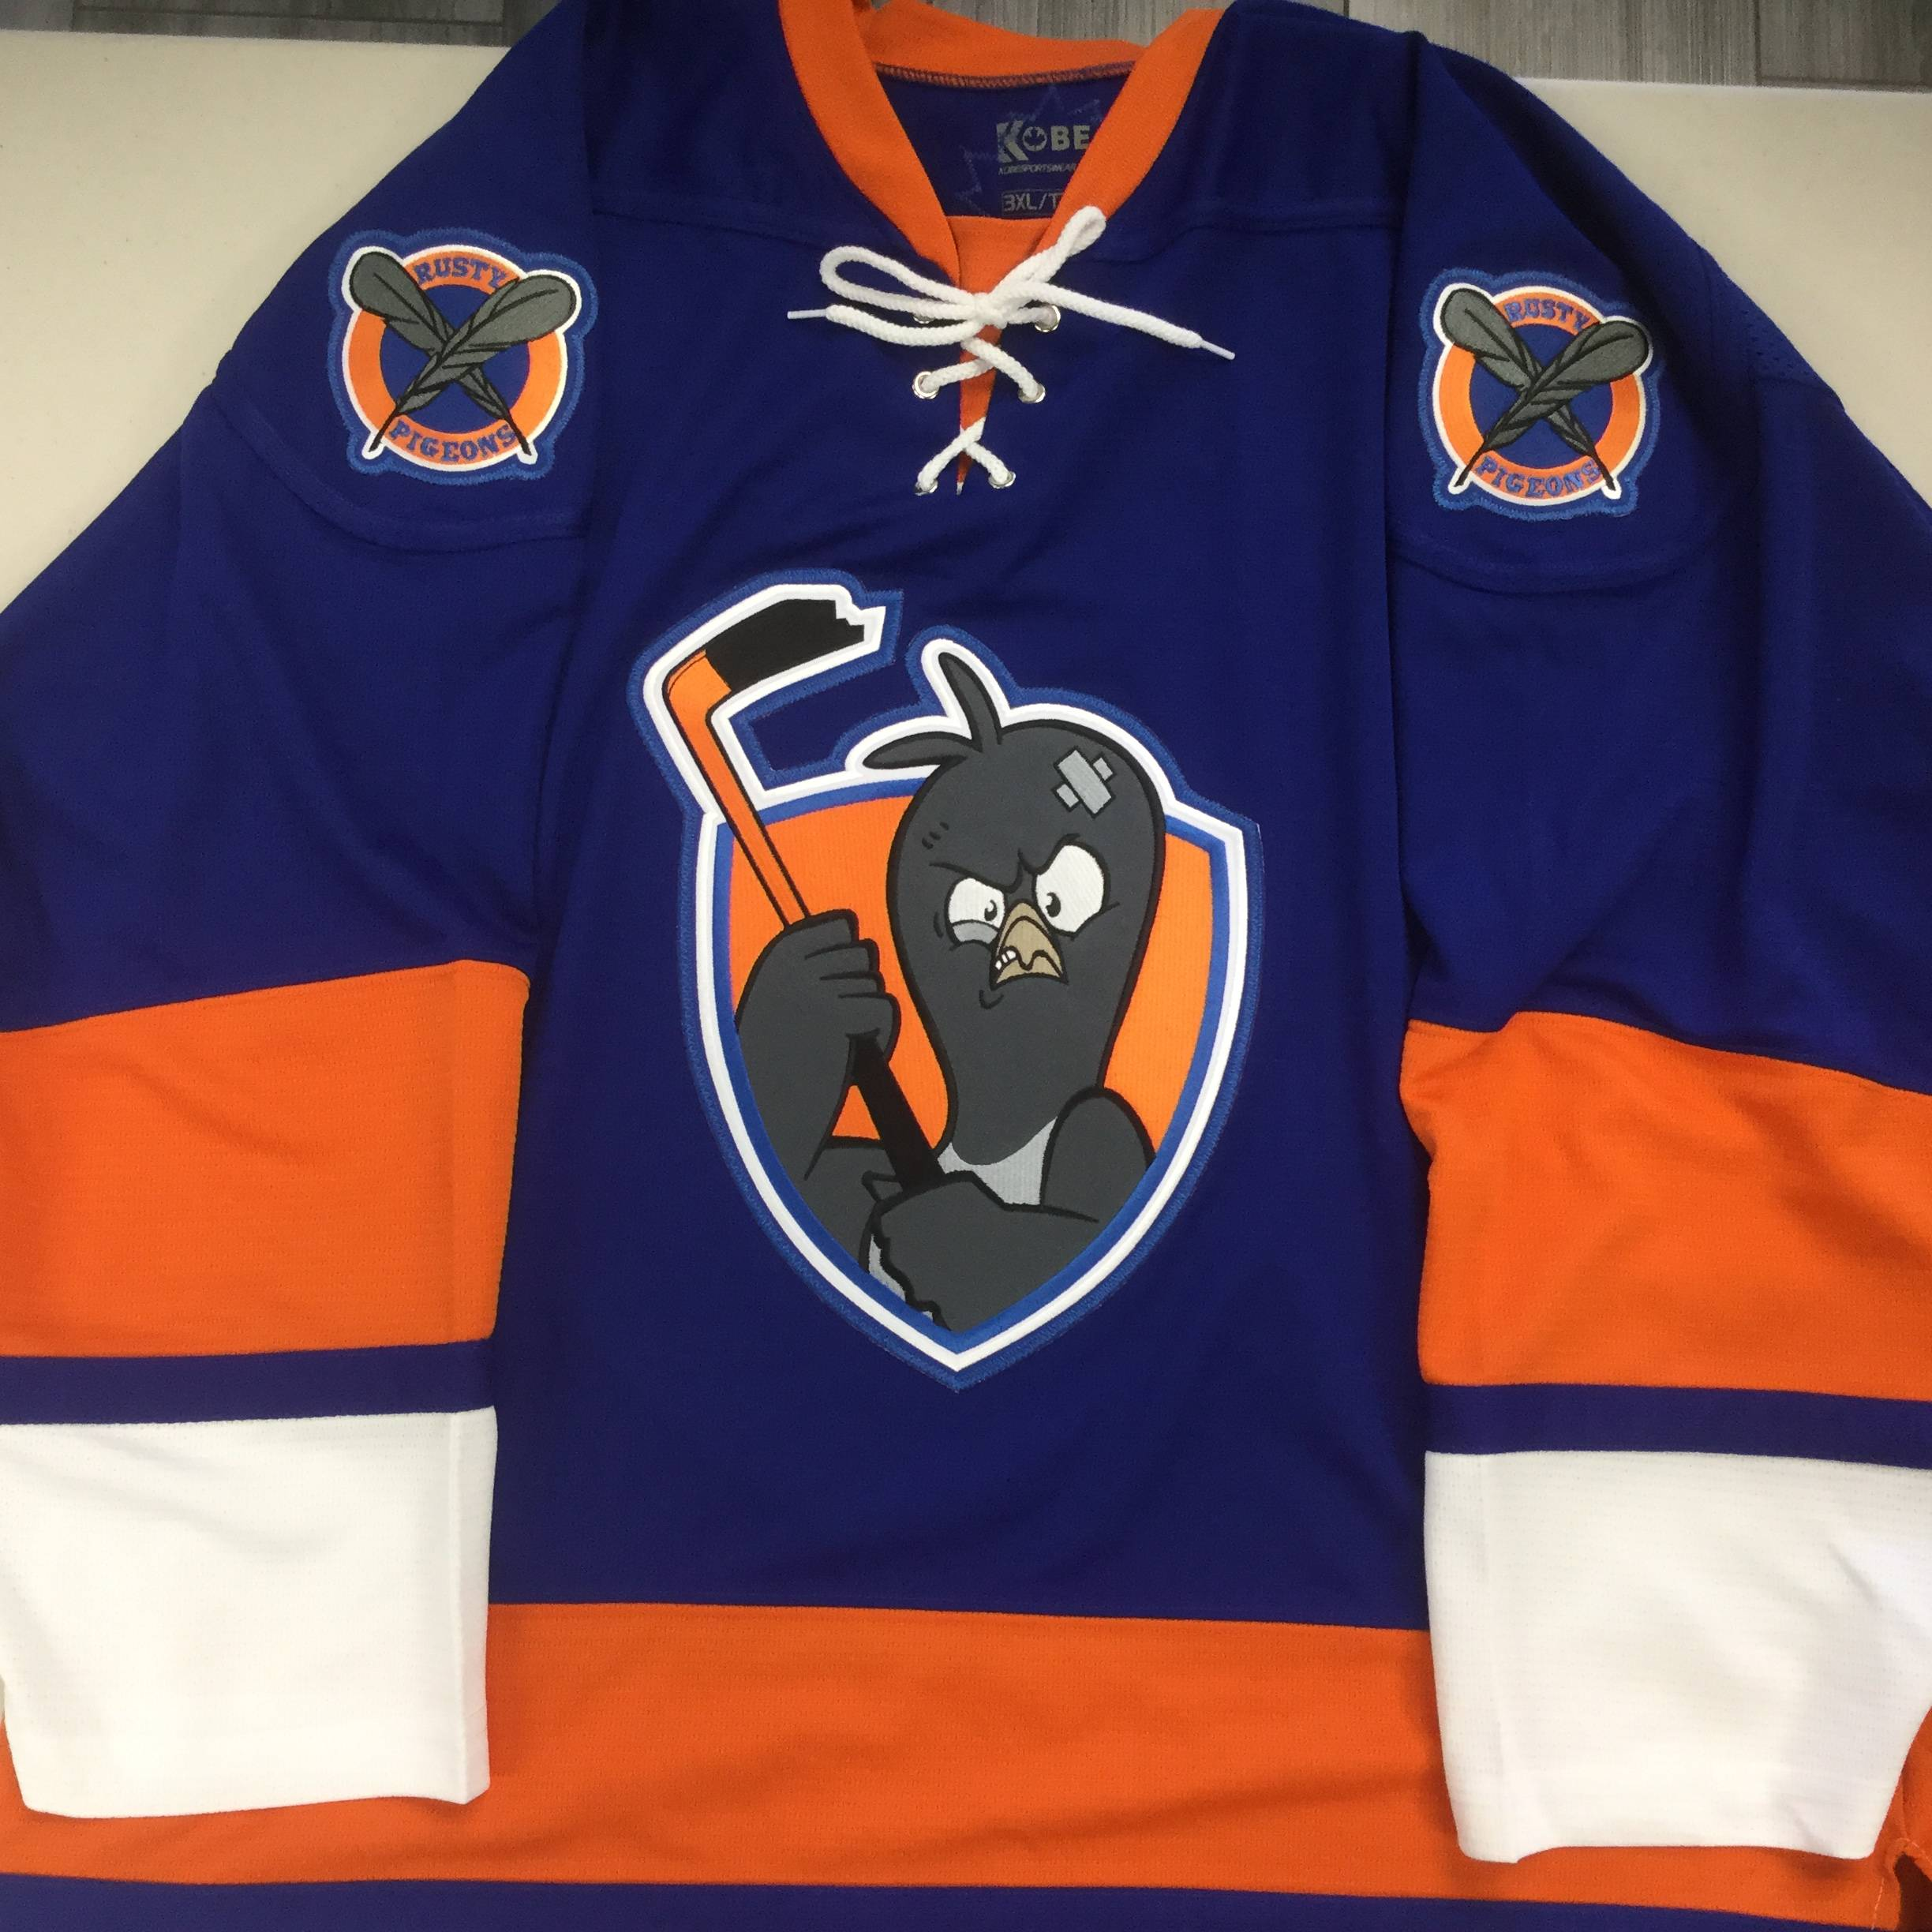 Custom Hockey Jersey With Embroidered Twill Crest on Kobe K3G50A New York Islanders Blue: Rusty Pigeons